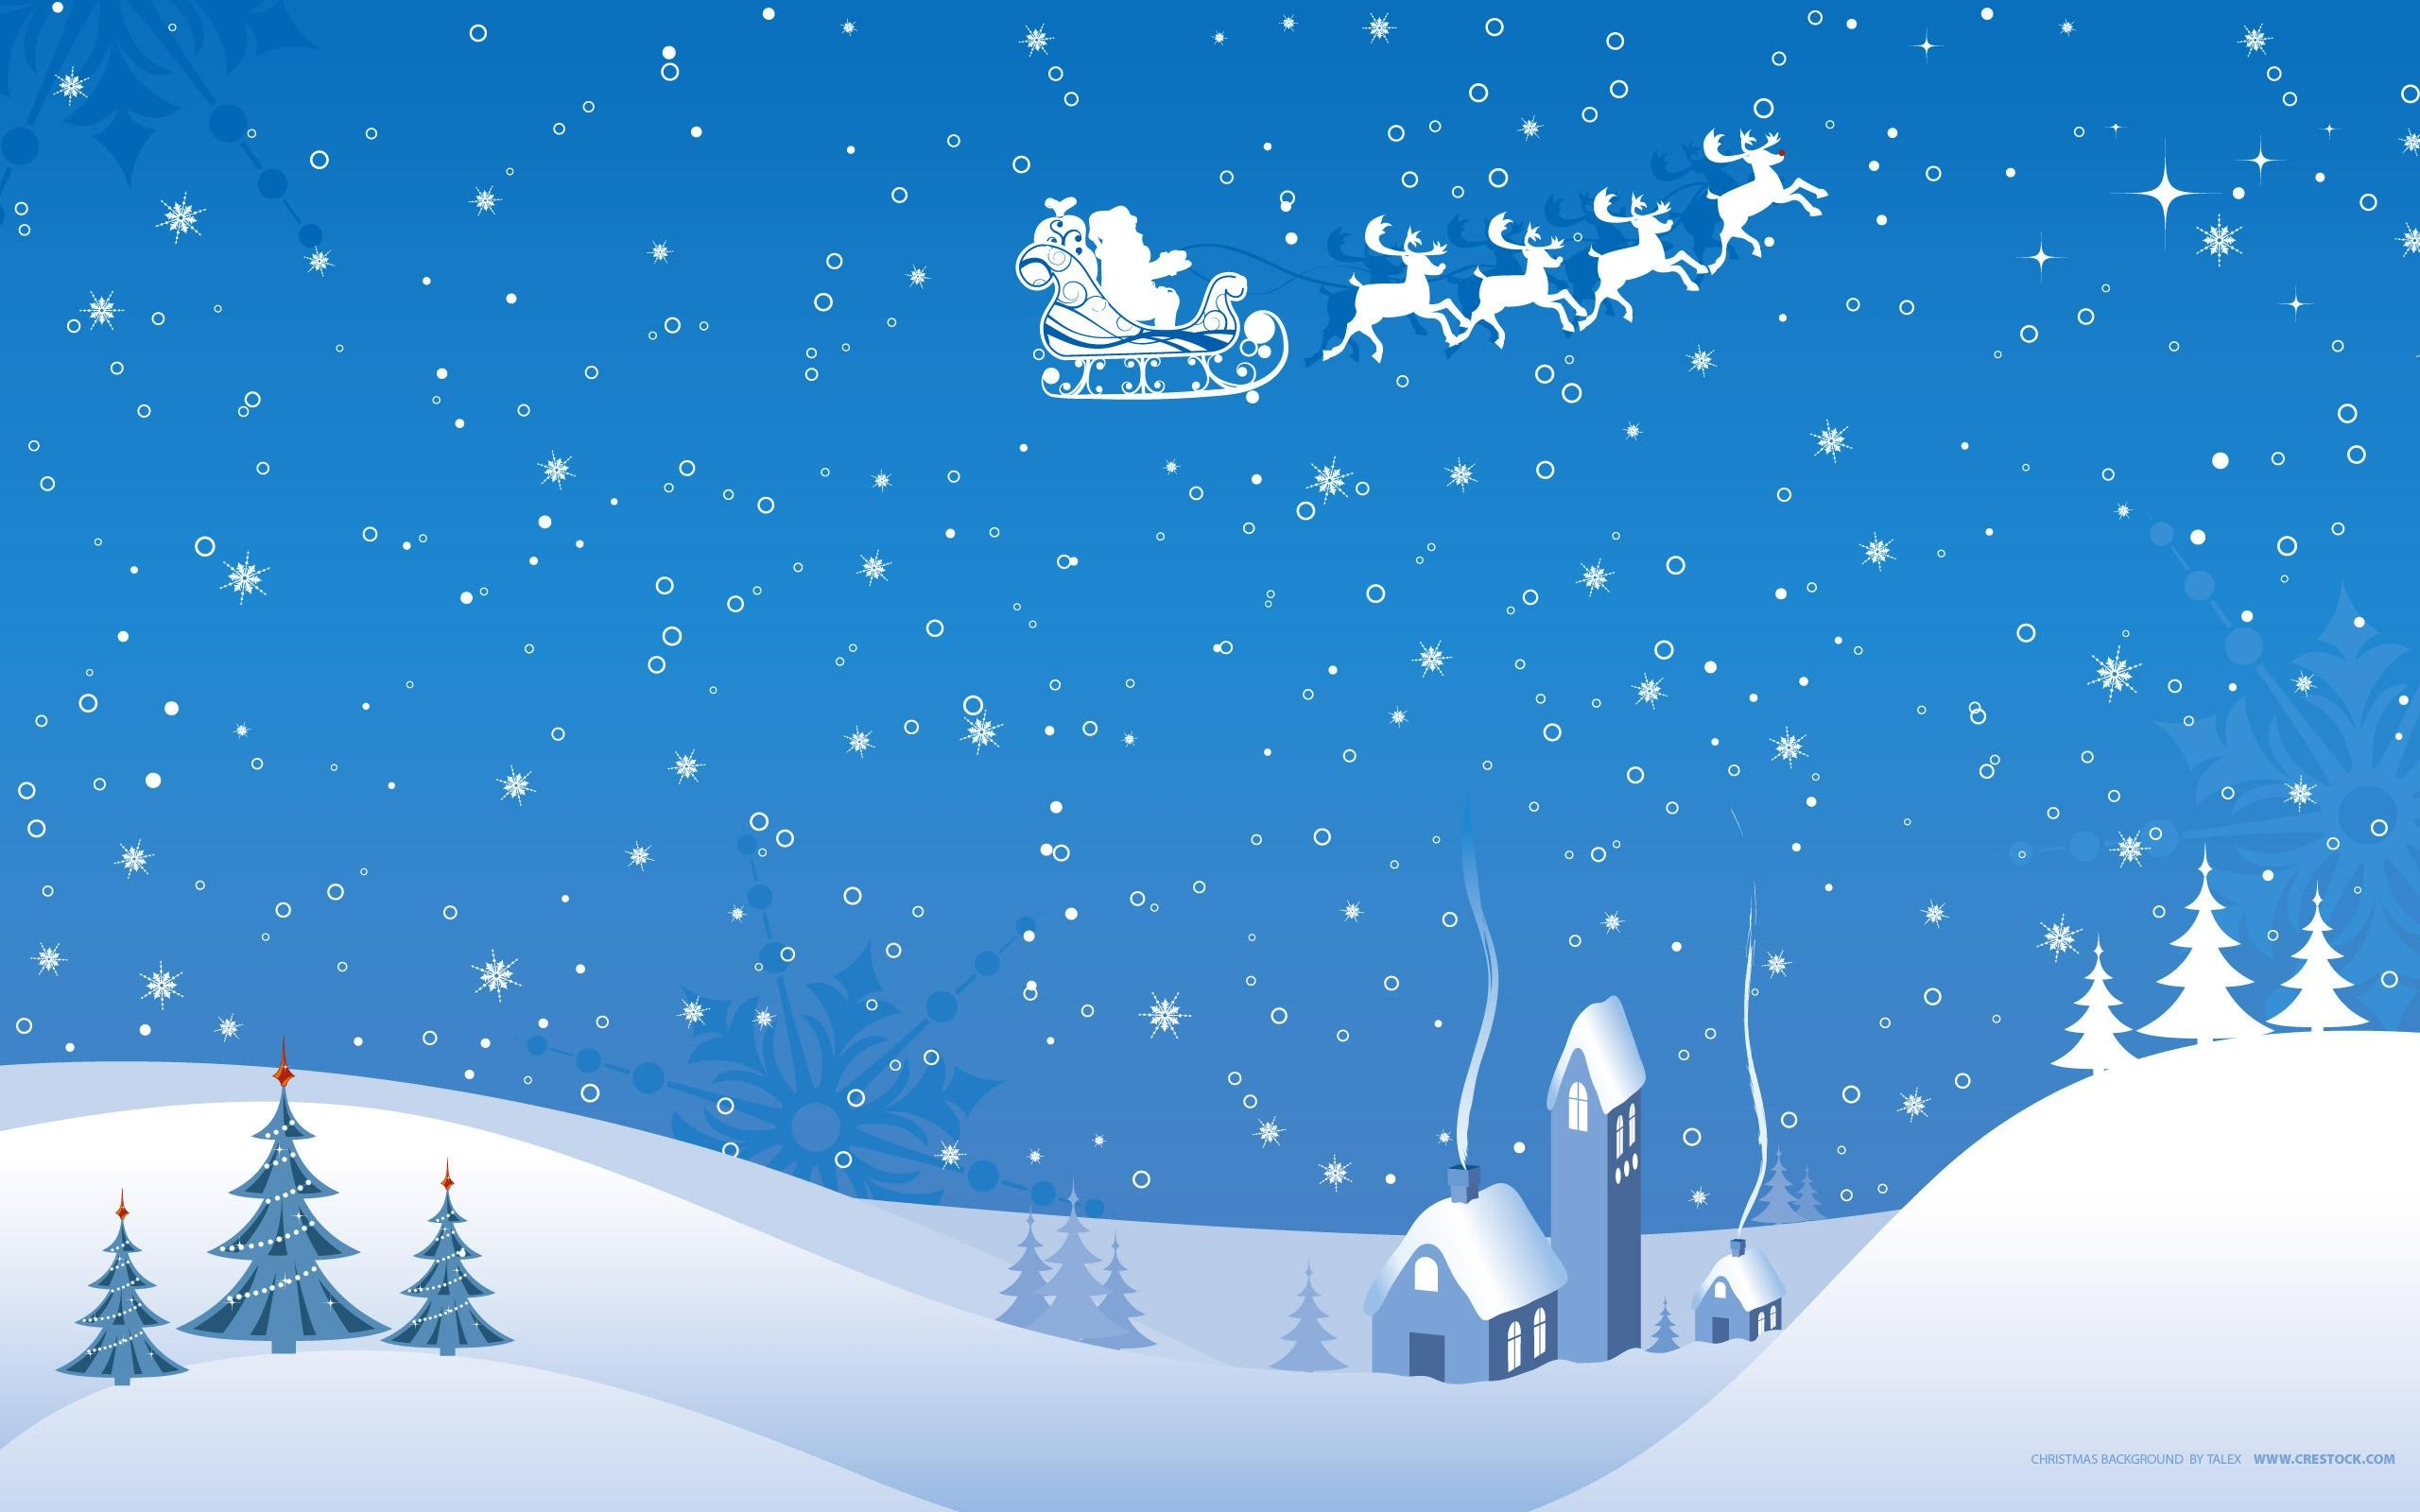 Christmas Background Images Hd.White Christmas Background Download Free Hd Wallpapers